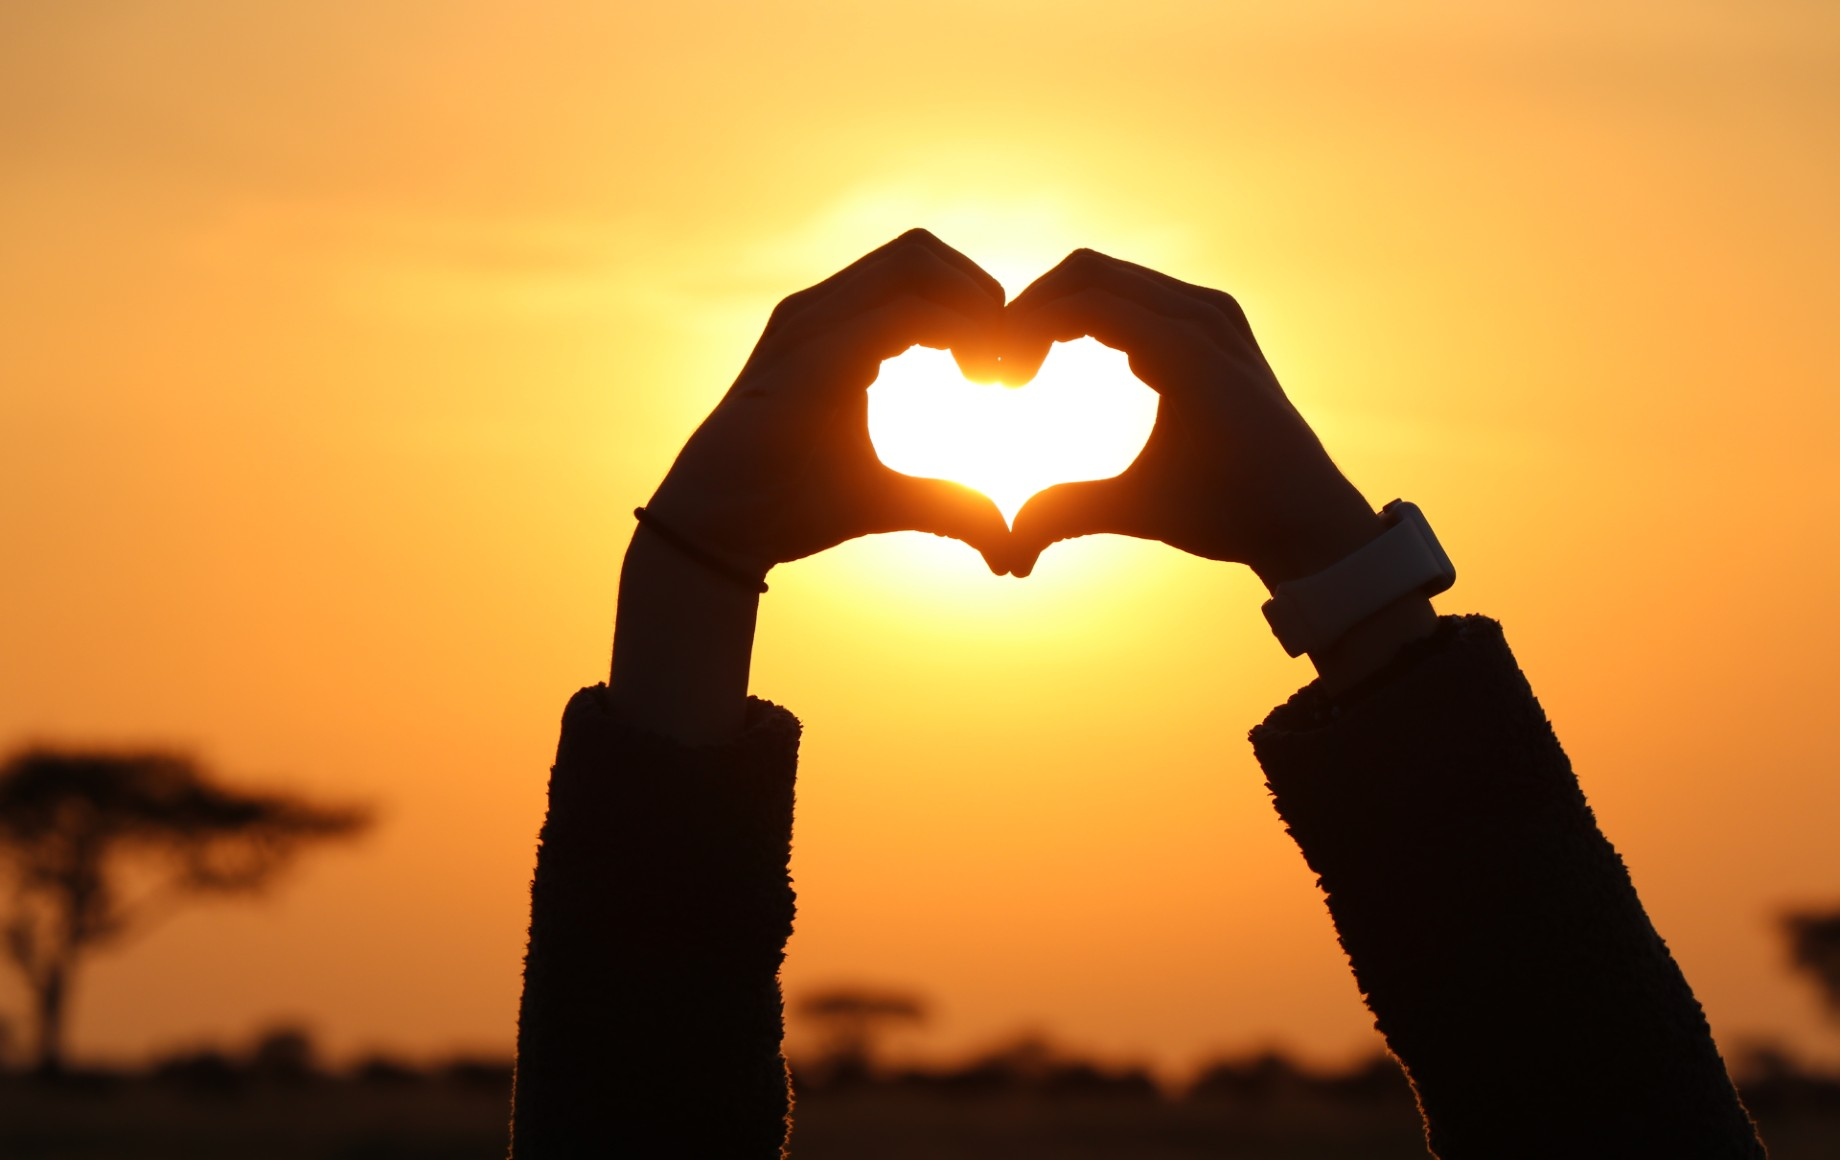 A heart made of hands over the sun